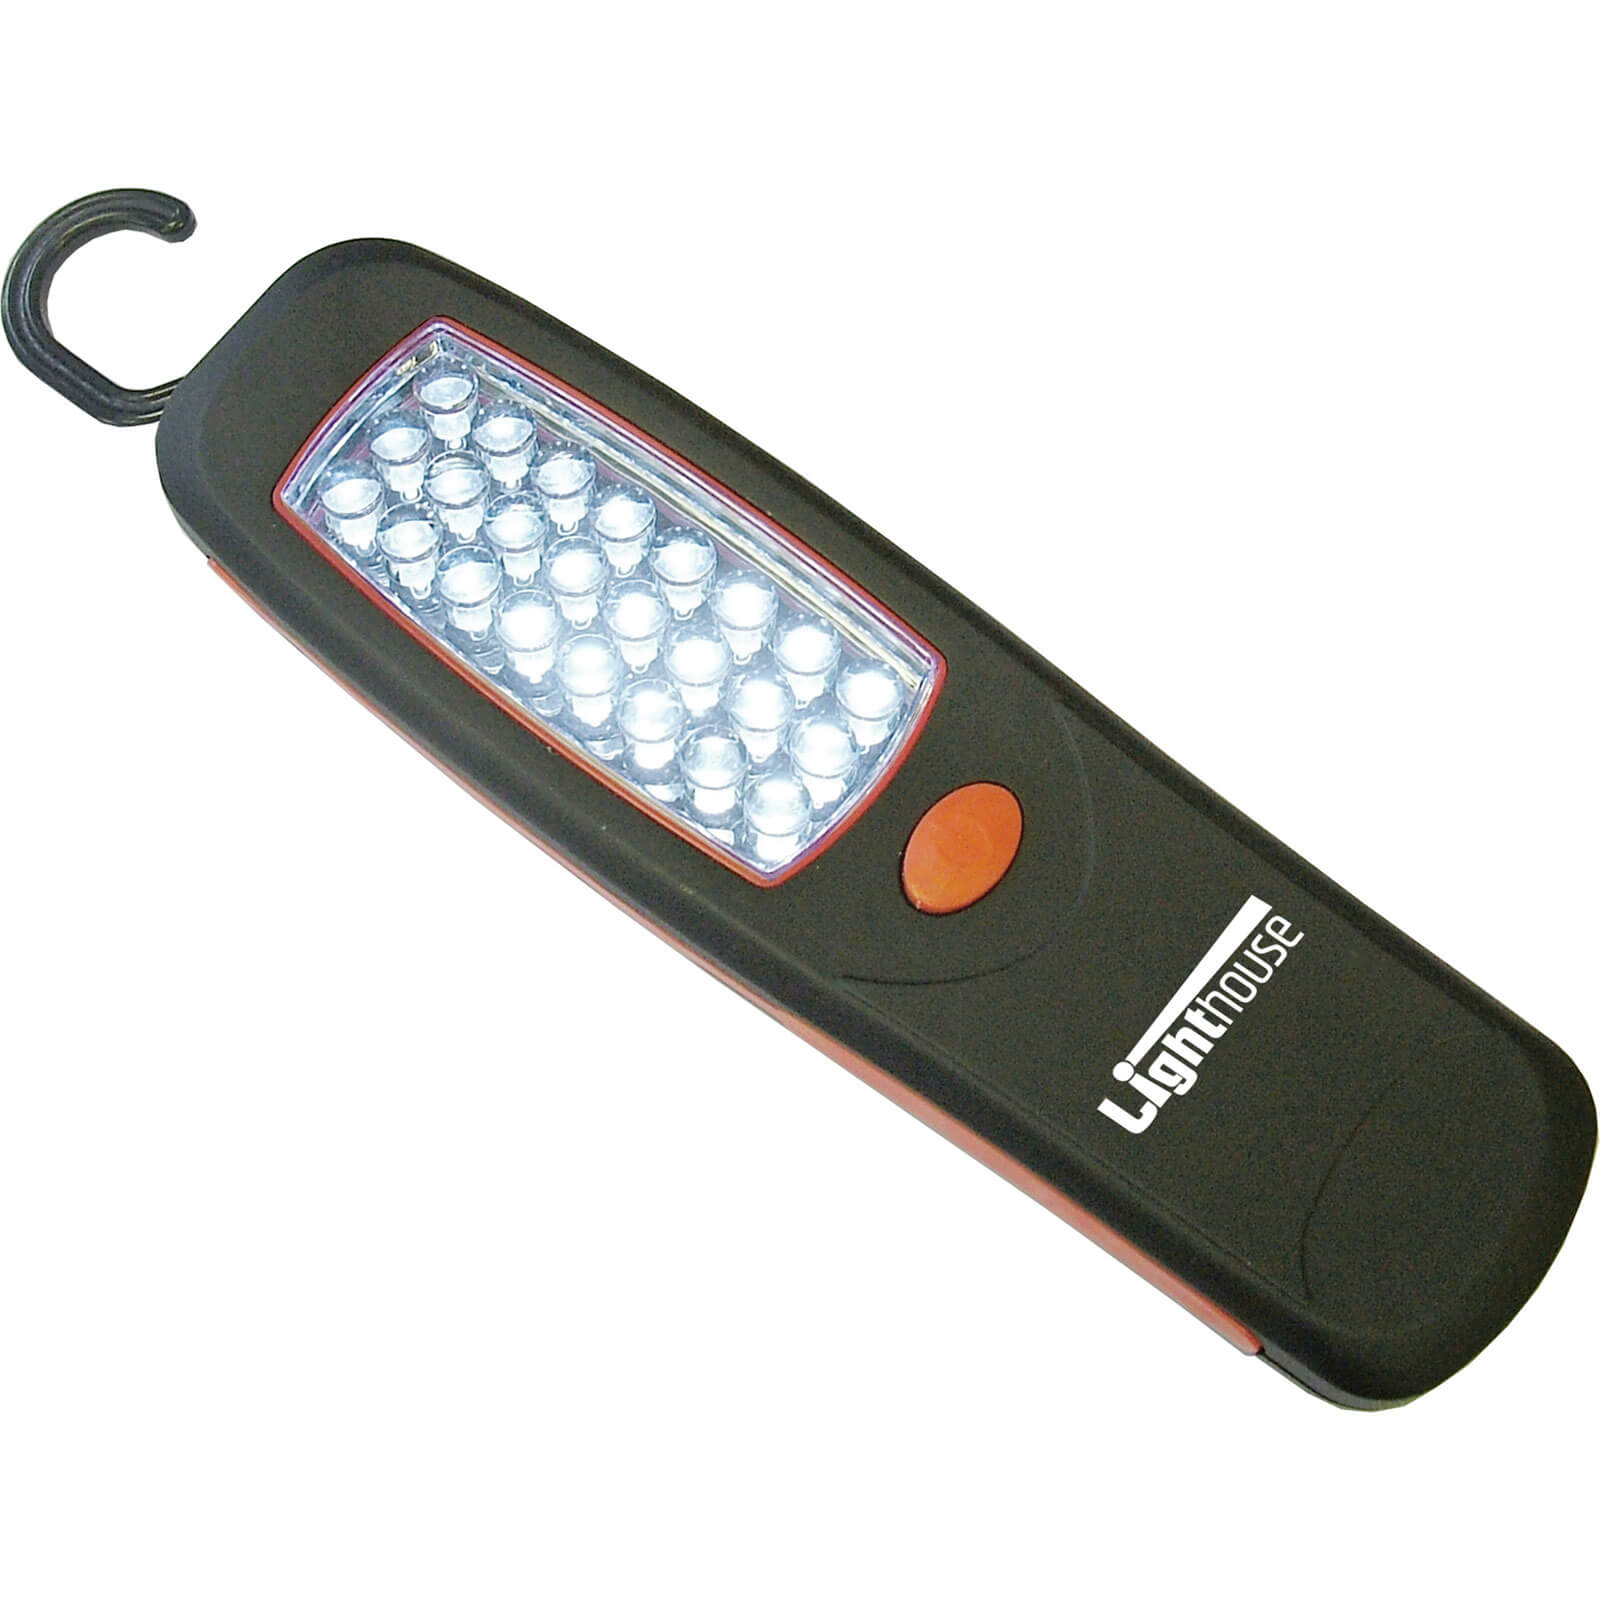 Image of Lighthouse 24 LED Magnetic Hand Lamp & Hook 120 Lumens Size 3 x AA Batteries